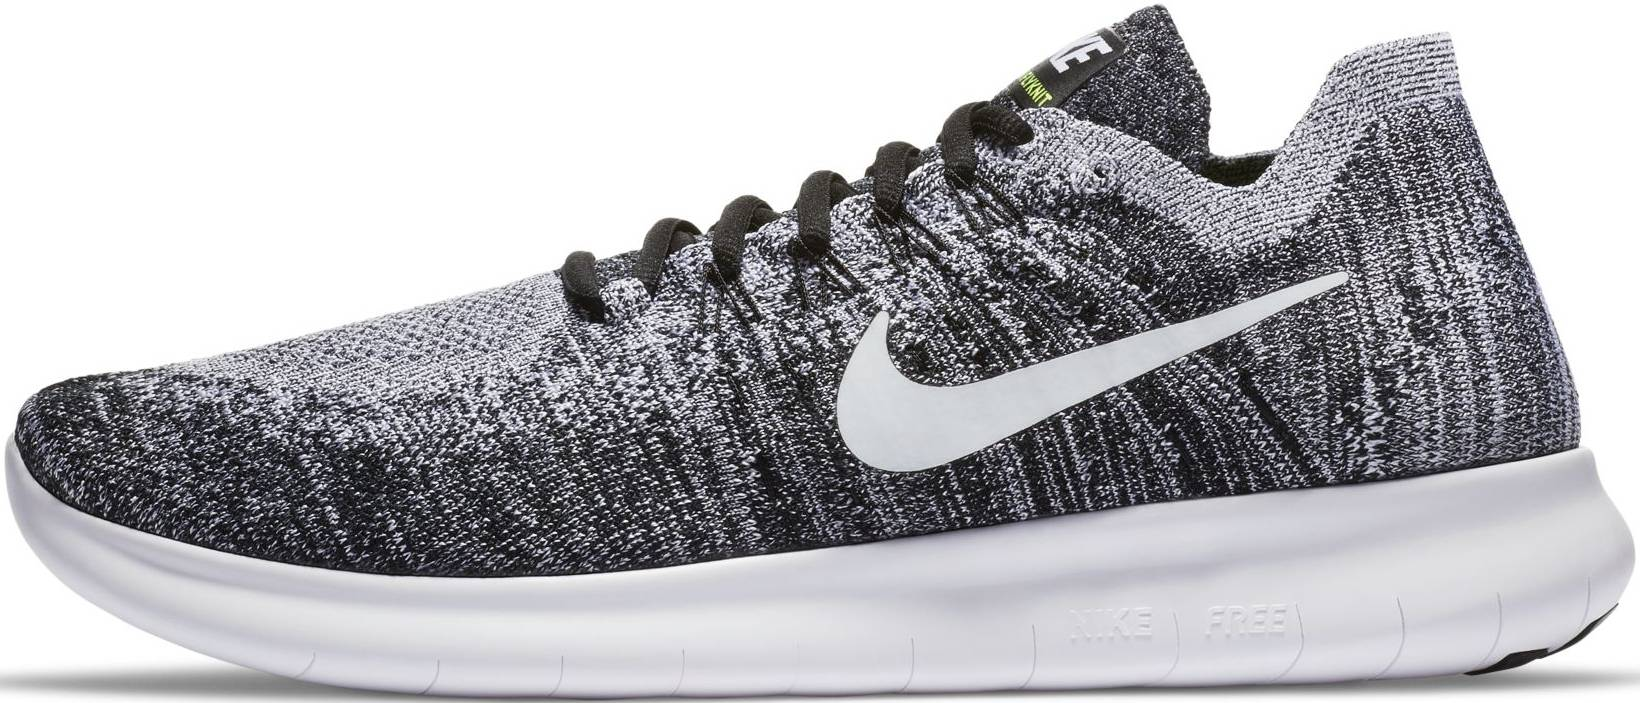 Autocomplacencia Deseo Notorio  Nike Free RN Flyknit 2017 only $100 + review | RunRepeat